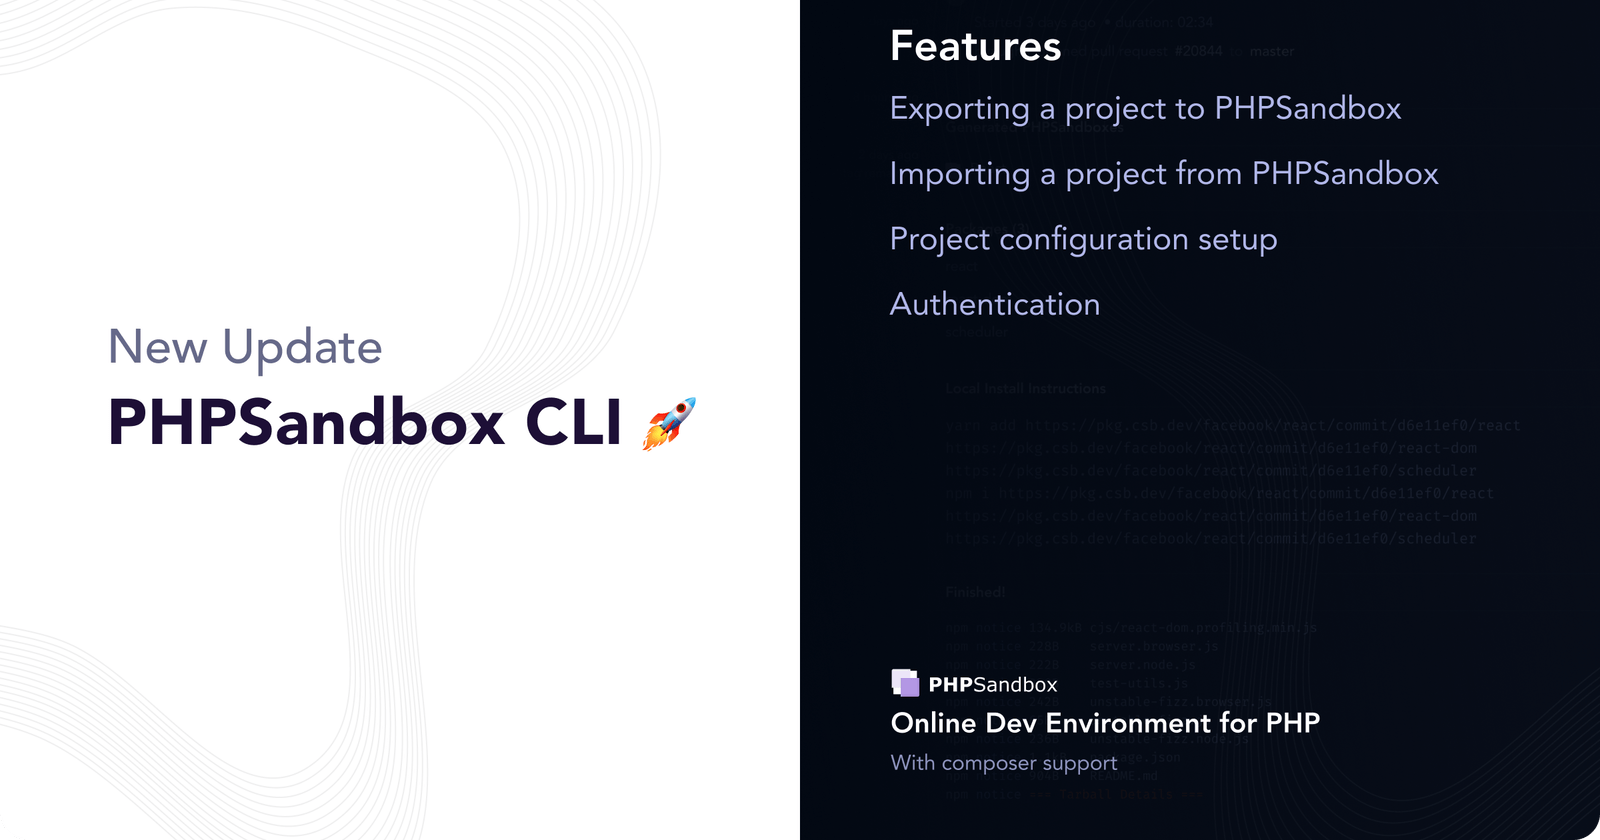 Annoucing the first release of PHPSandbox CLI